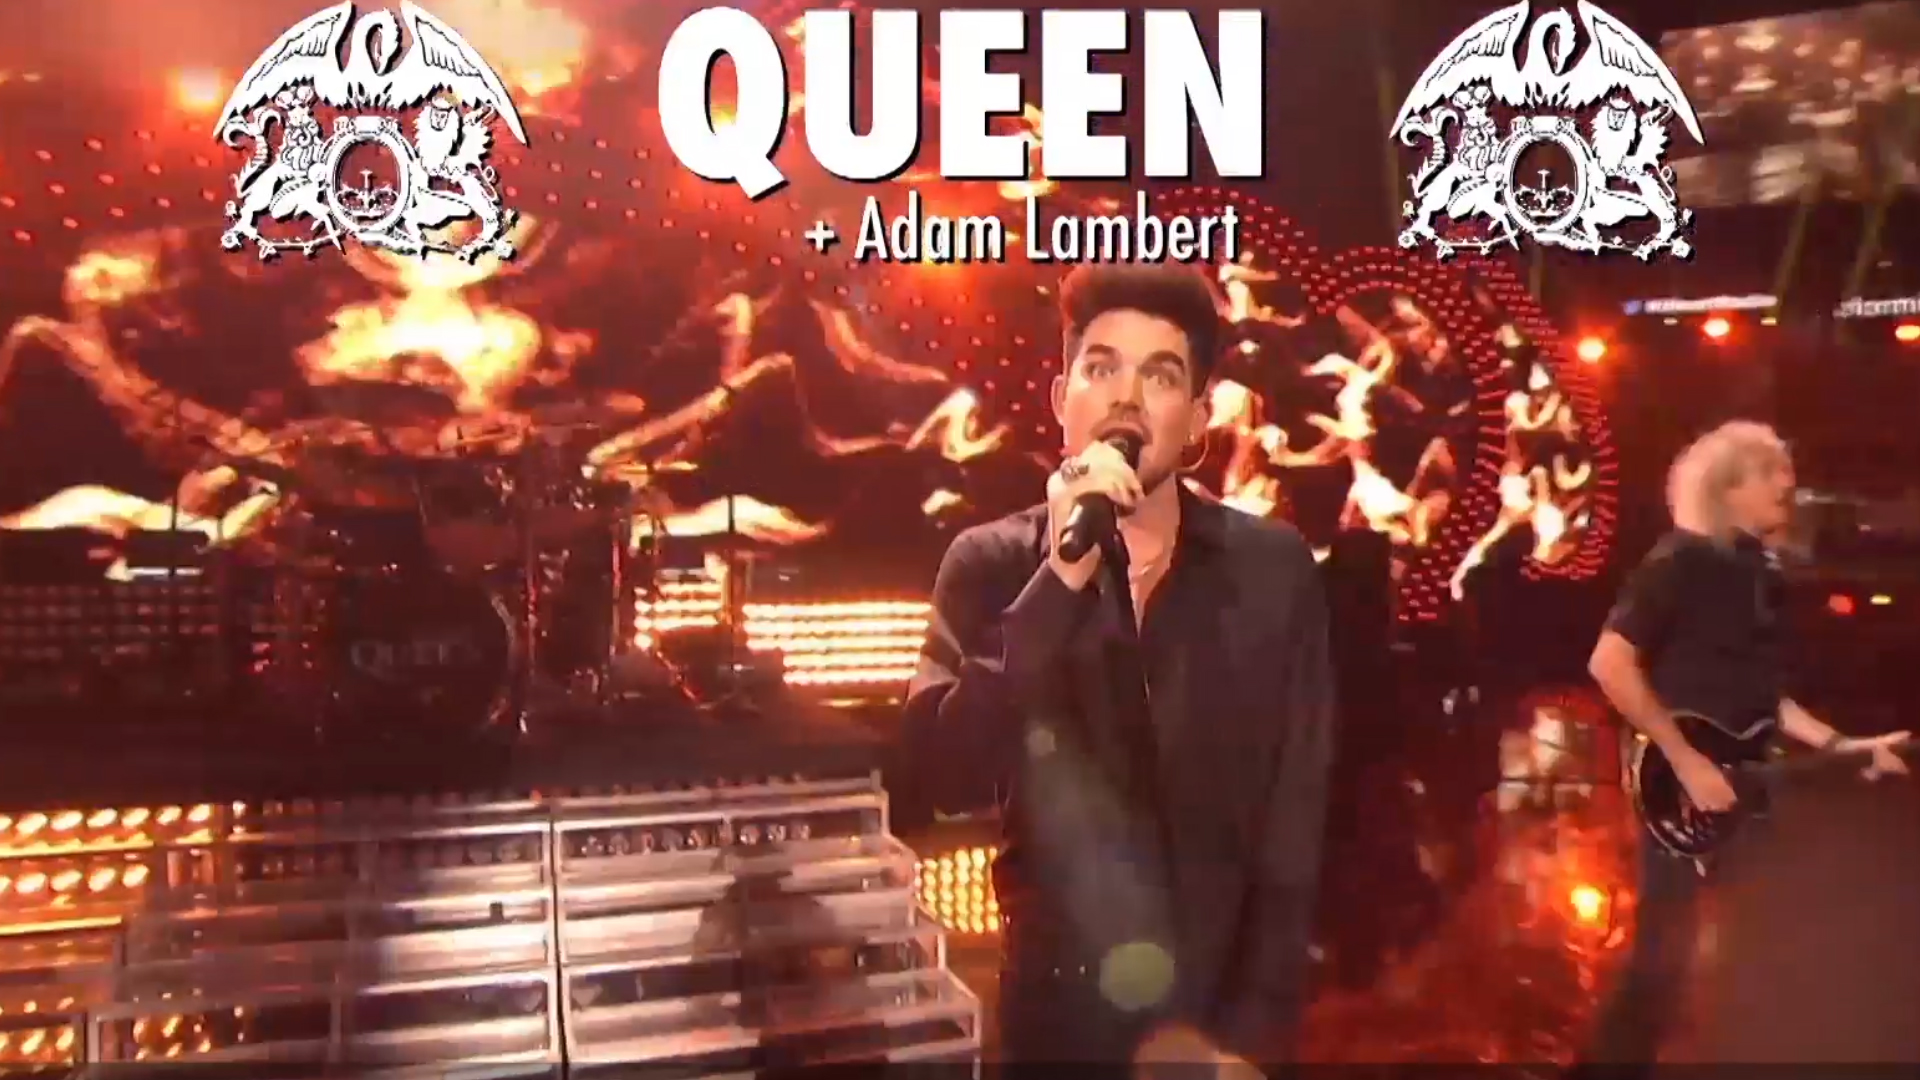 Queen And Adam Lambert O2 , HD Wallpaper & Backgrounds